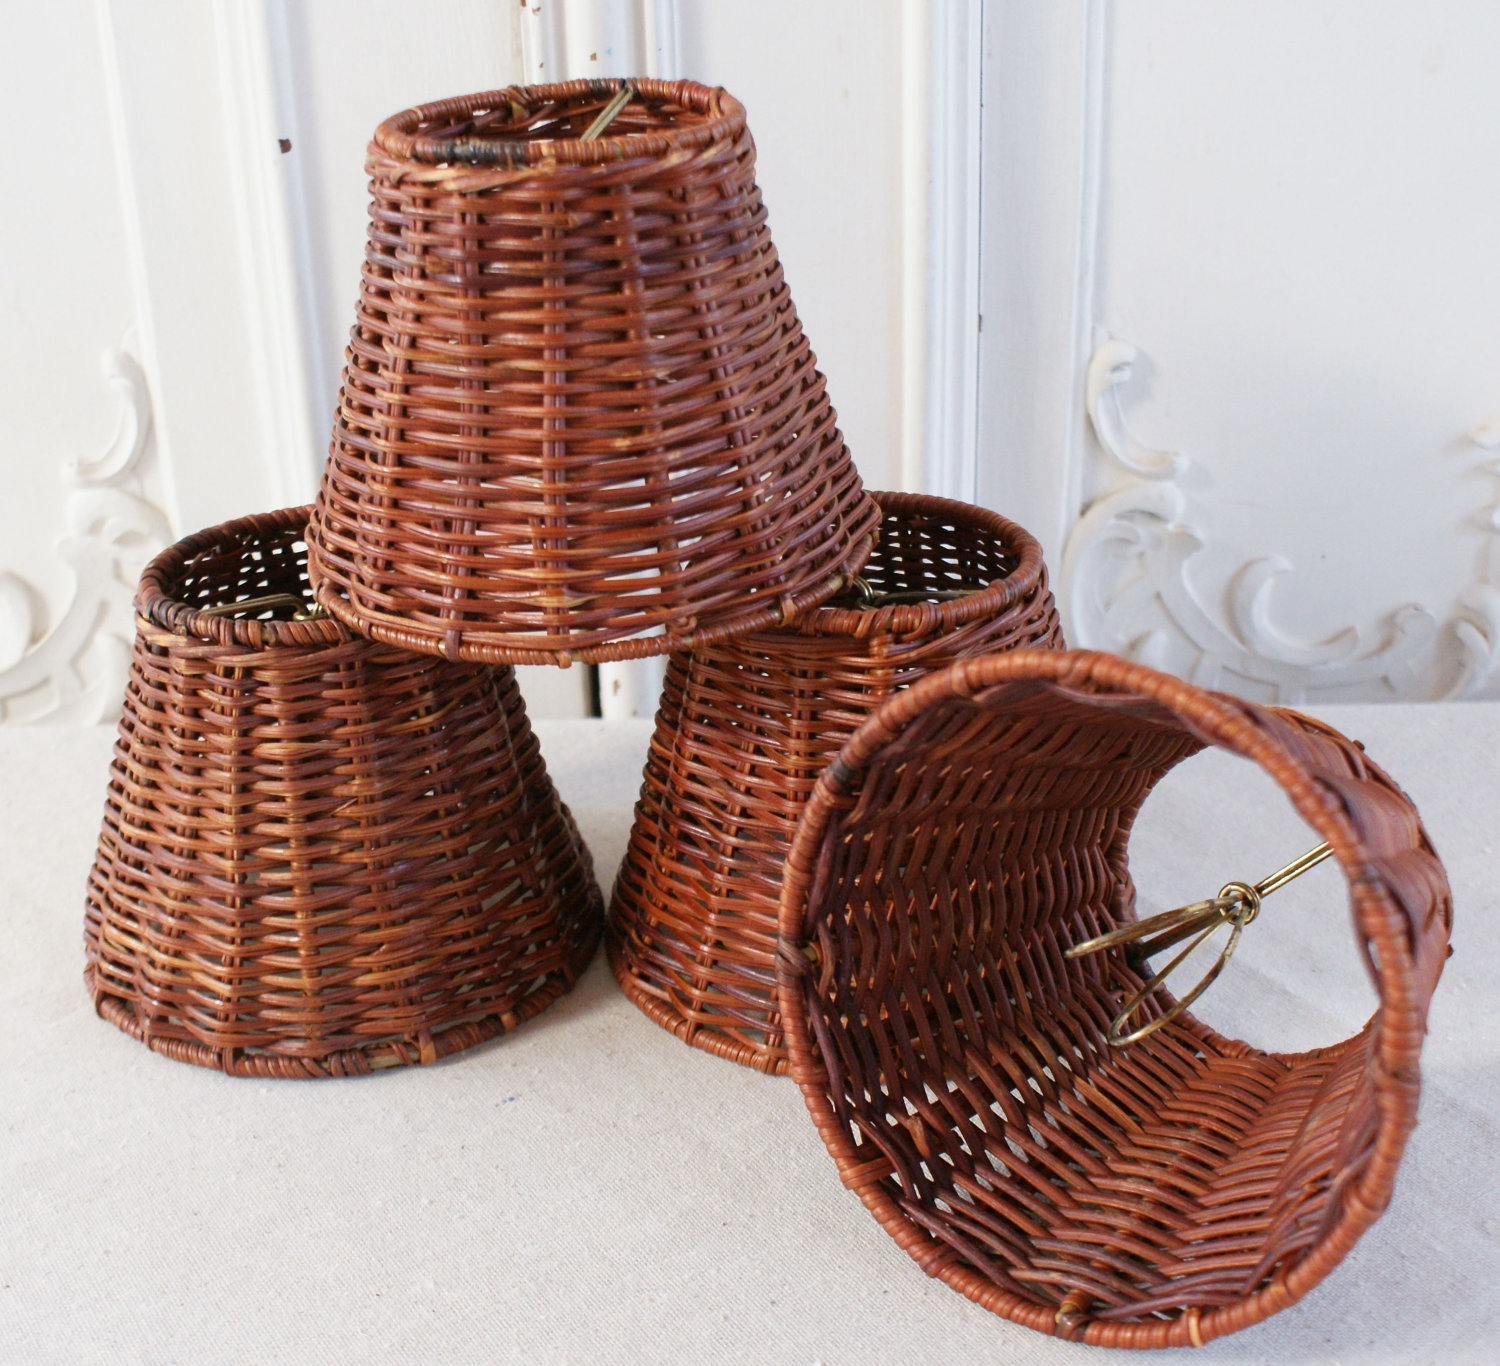 Wicker Chandelier With Lamp Shades Very Awesome Lamp Shade Intended For Chandeliers With Lamp Shades (Image 25 of 25)